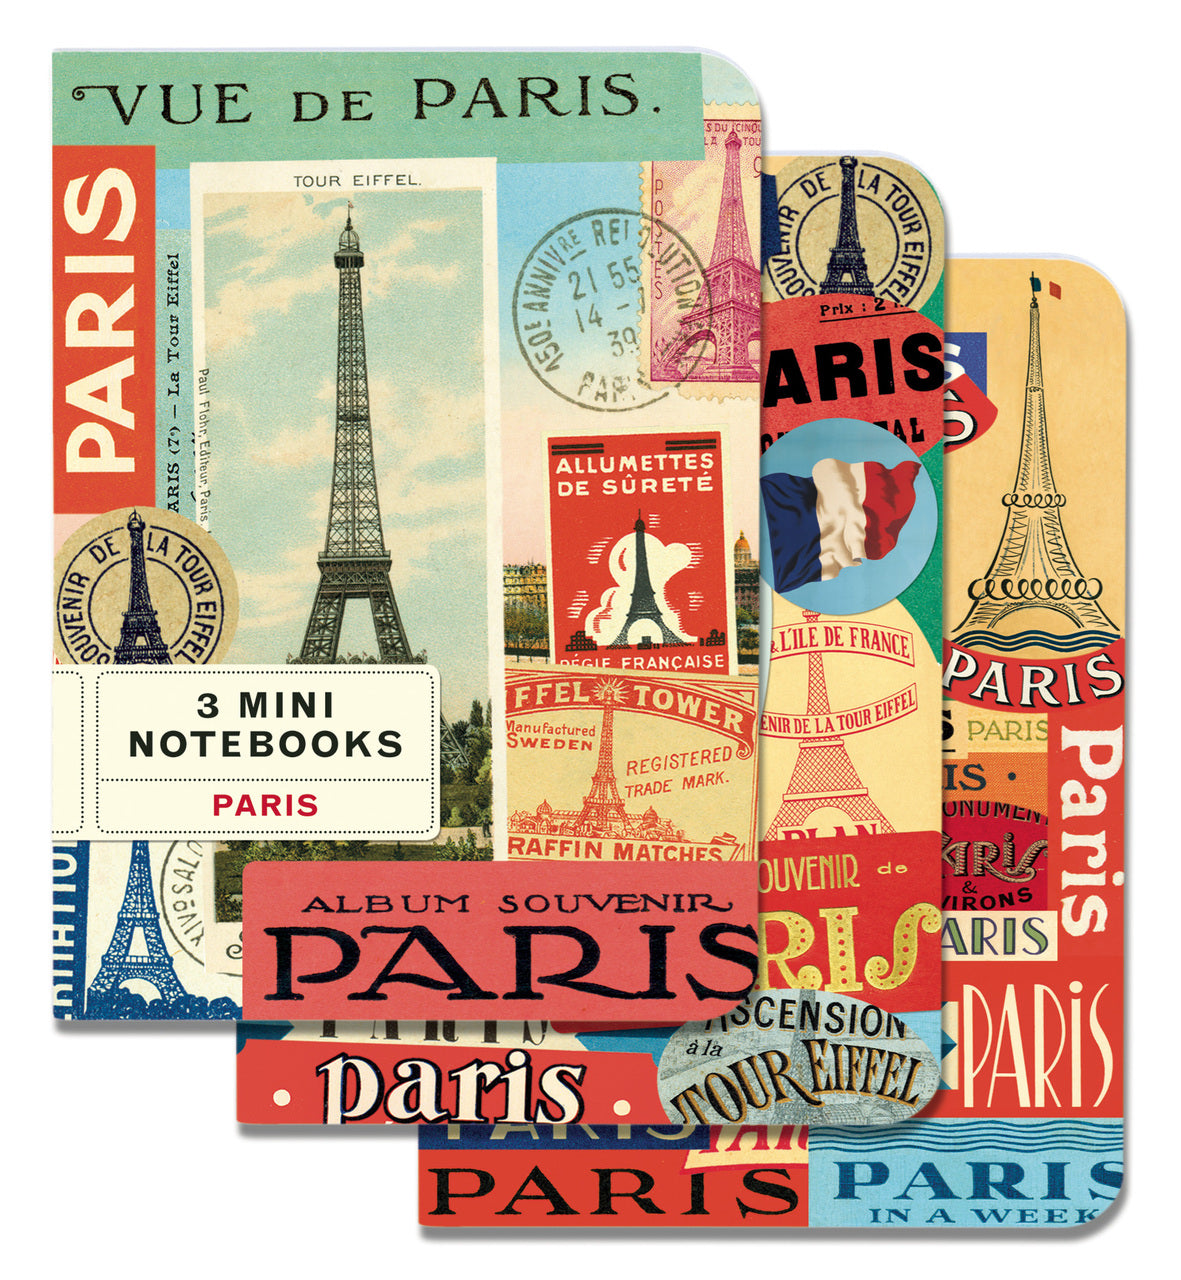 Cavallini & Co. Paris Mini Notebook Set features images of Paris. Each set comes with 3 notebooks: blank, lined, grid.